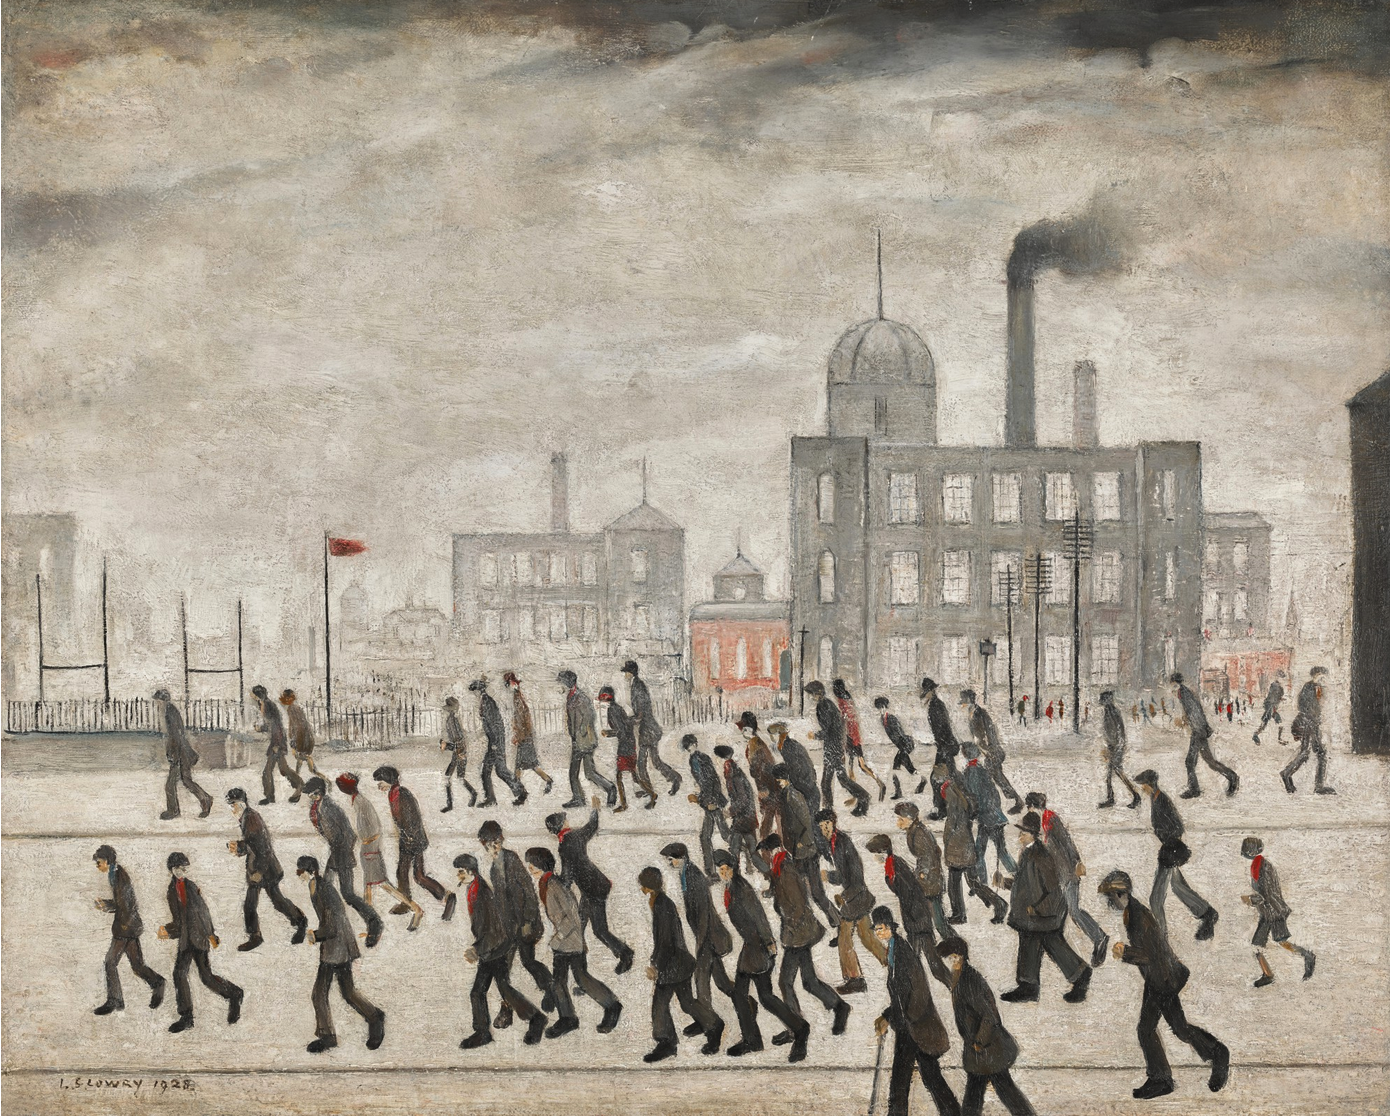 Going to the Match (1928) by Laurence Stephen Lowry (1887 - 1976), English artist.